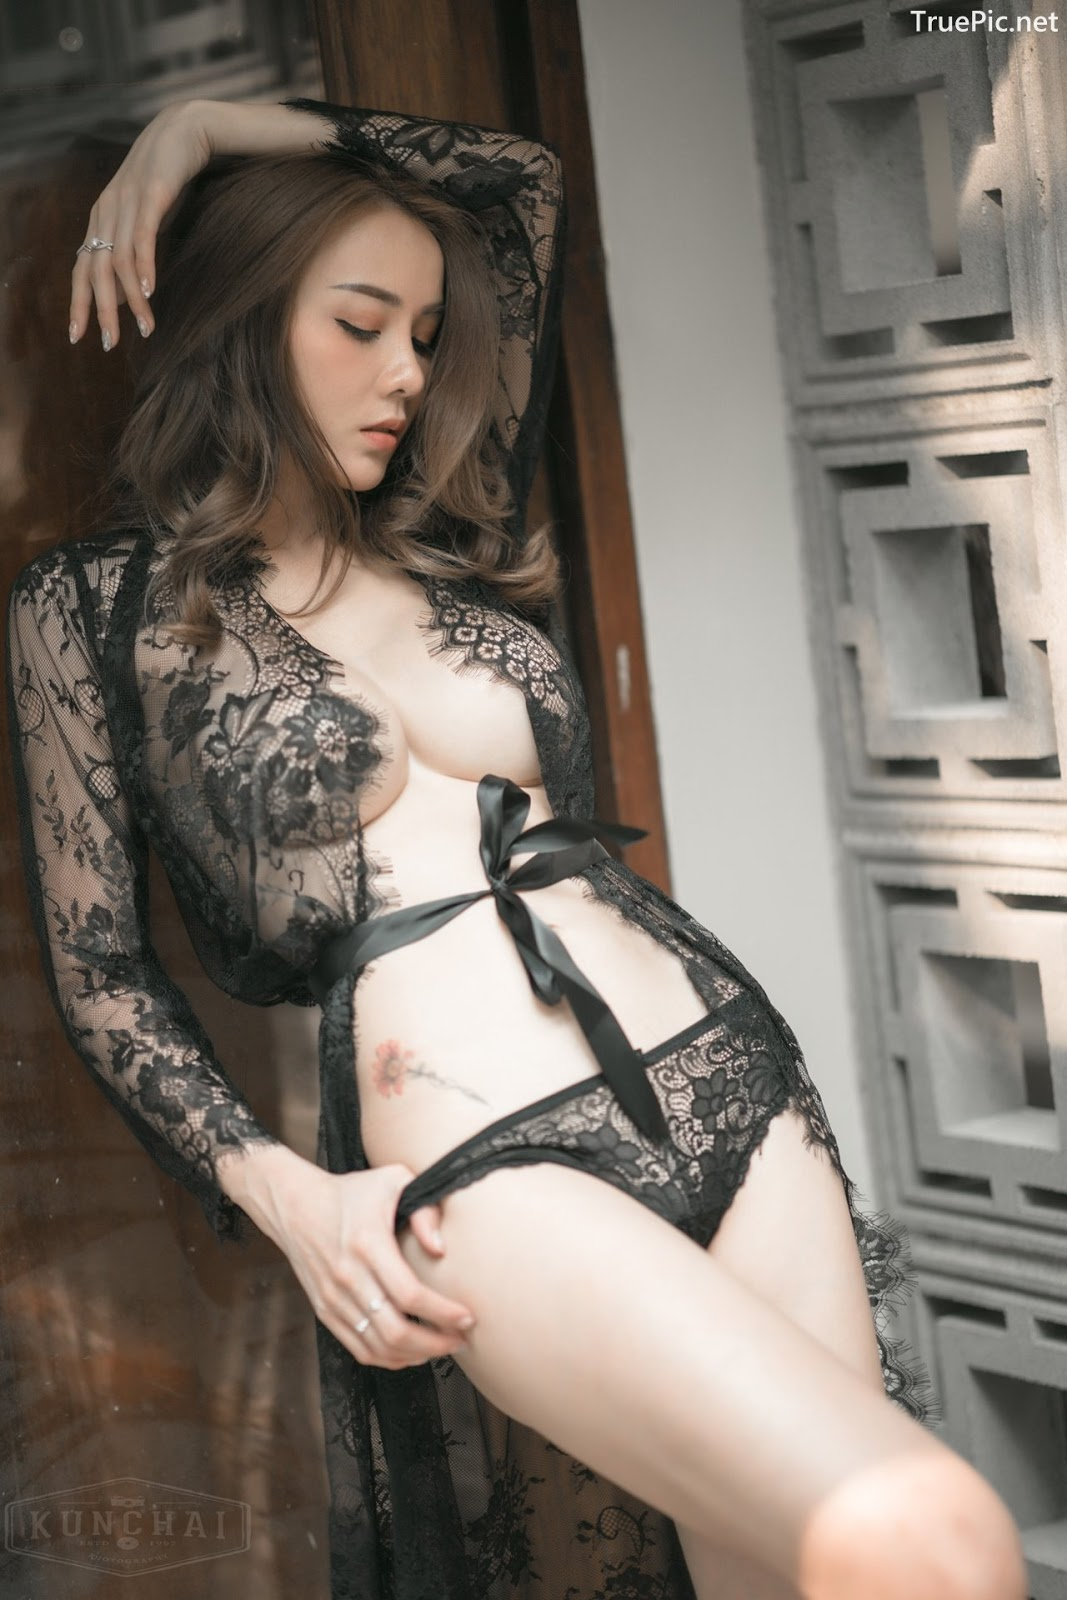 Image Thailand Sexy Model - Soraya Upaiprom - Black Lace Lingerie - TruePic.net - Picture-1